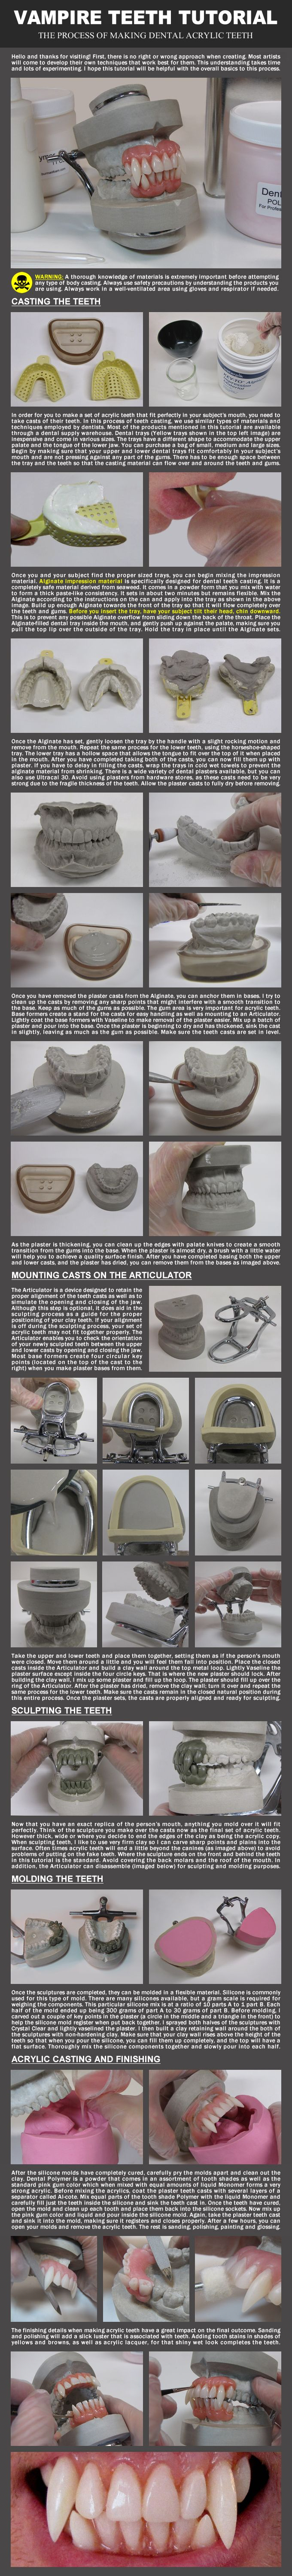 Teeth Tutorial by EvanCampbell on deviantART Wow, this tutorial is amazing.